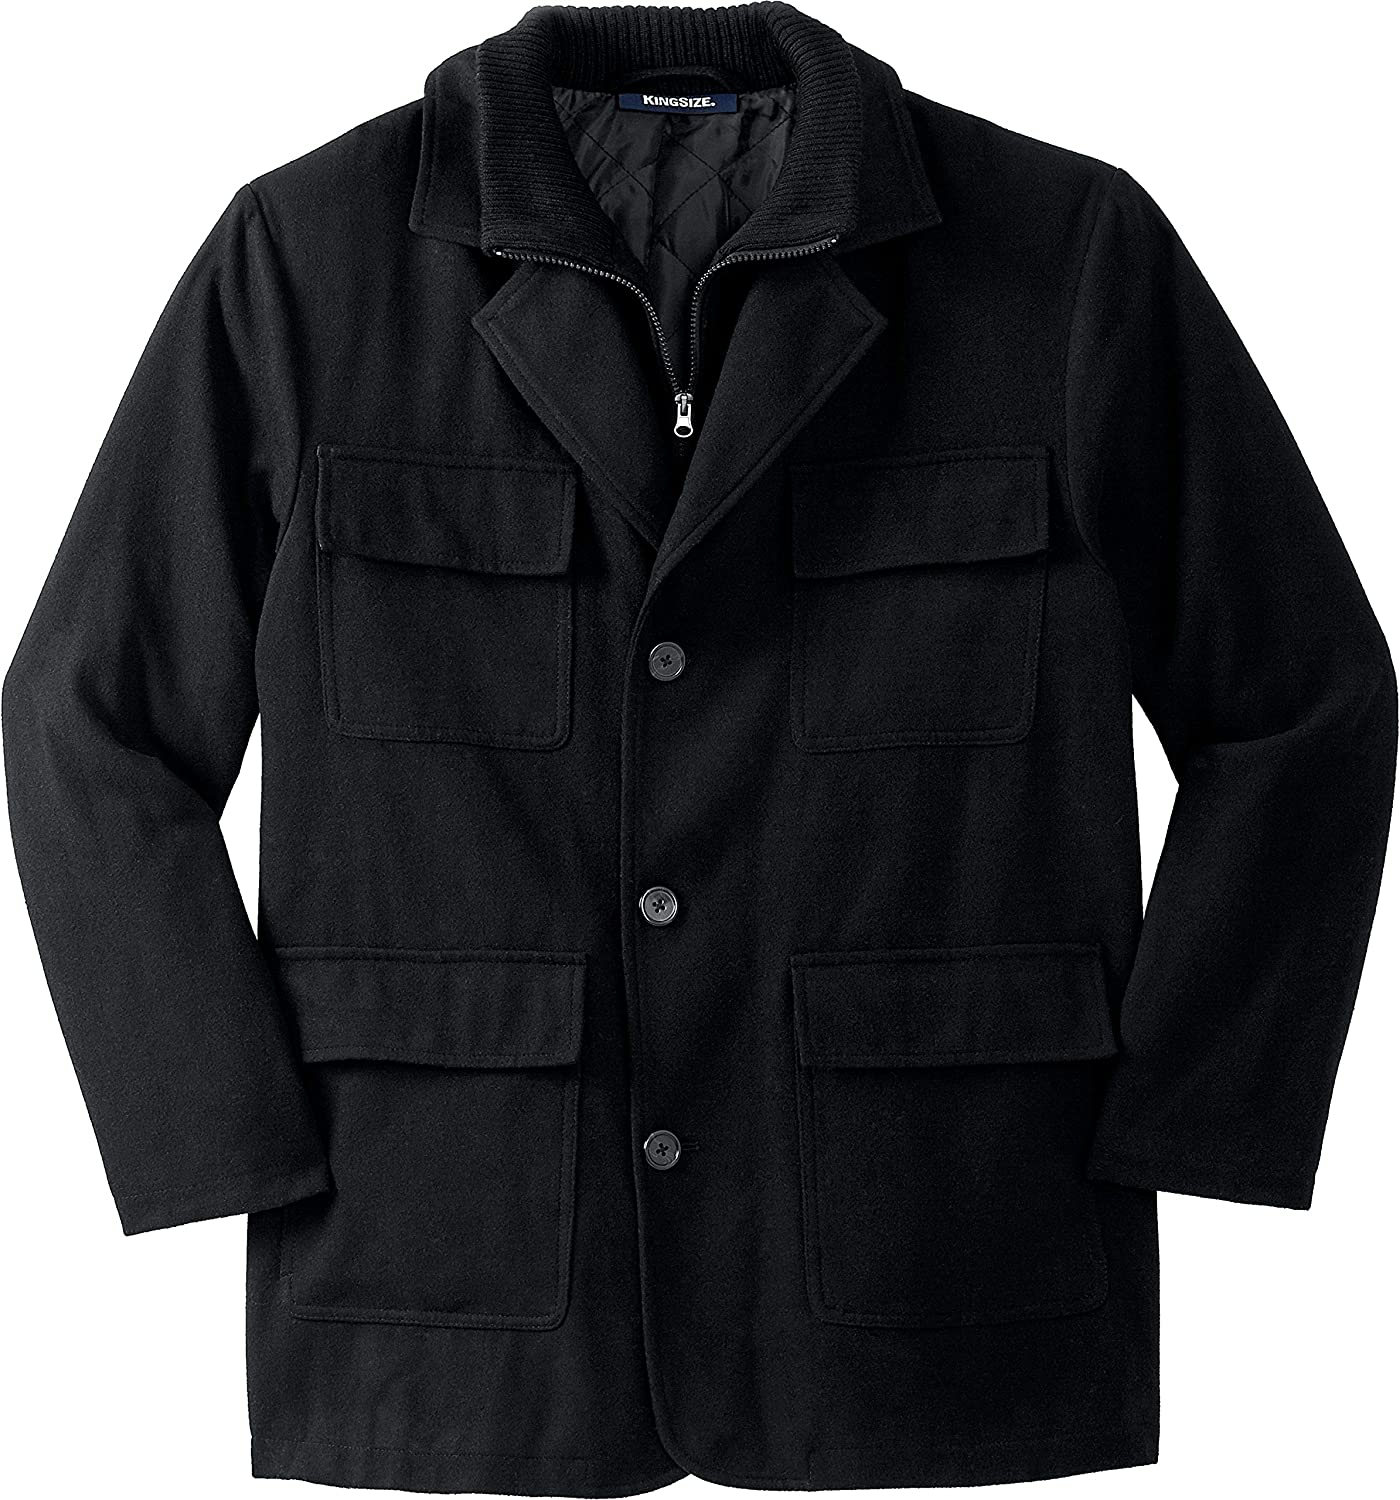 KingSize Men's Big & Tall Multi Pocket Inset Jacket Coat